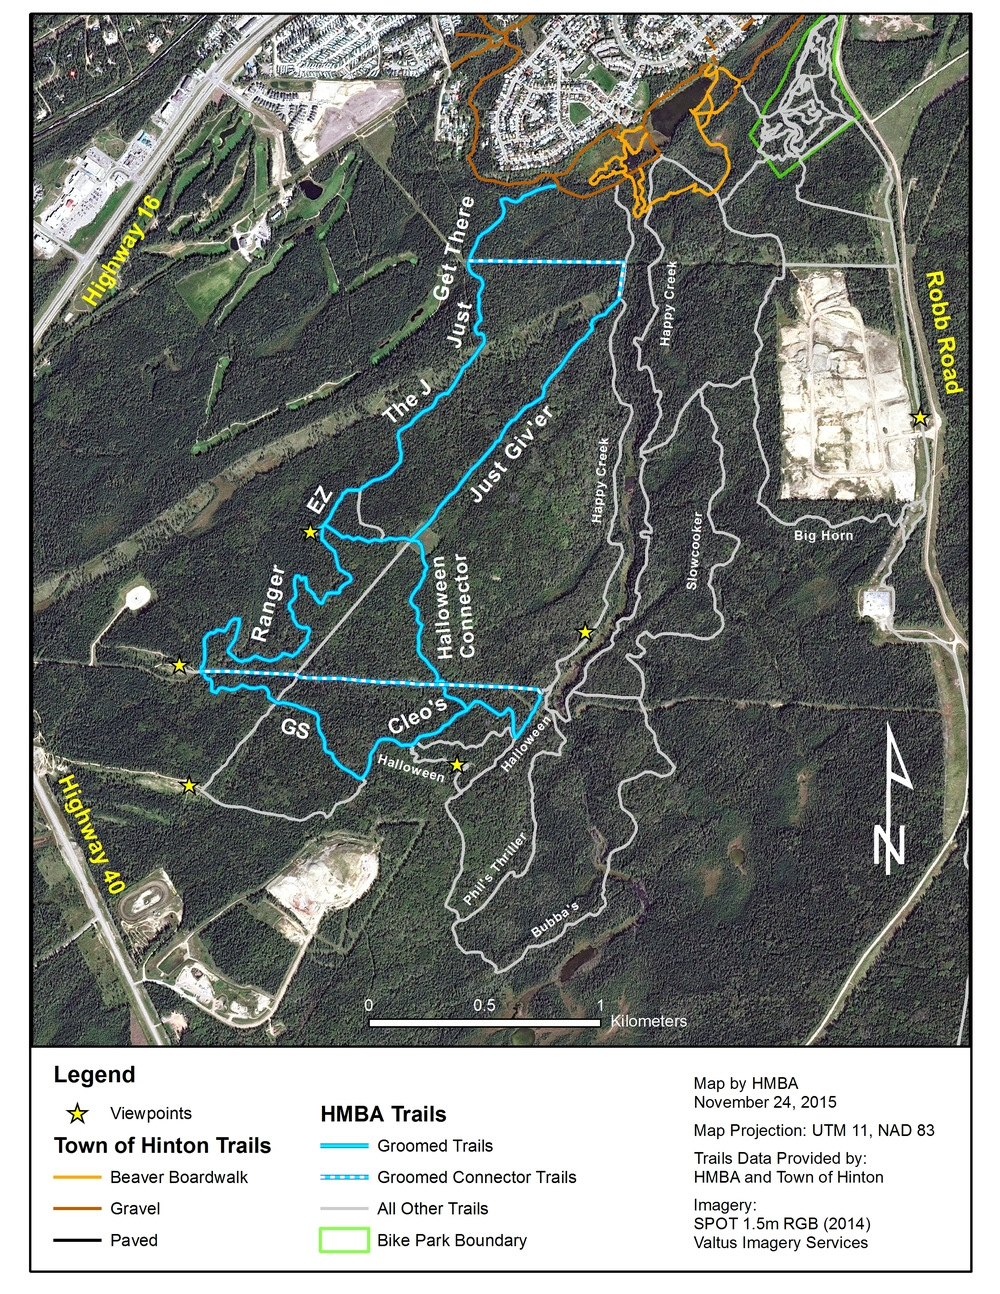 Map showing trails that will be groomed over the winter.  Click on image to enlarge